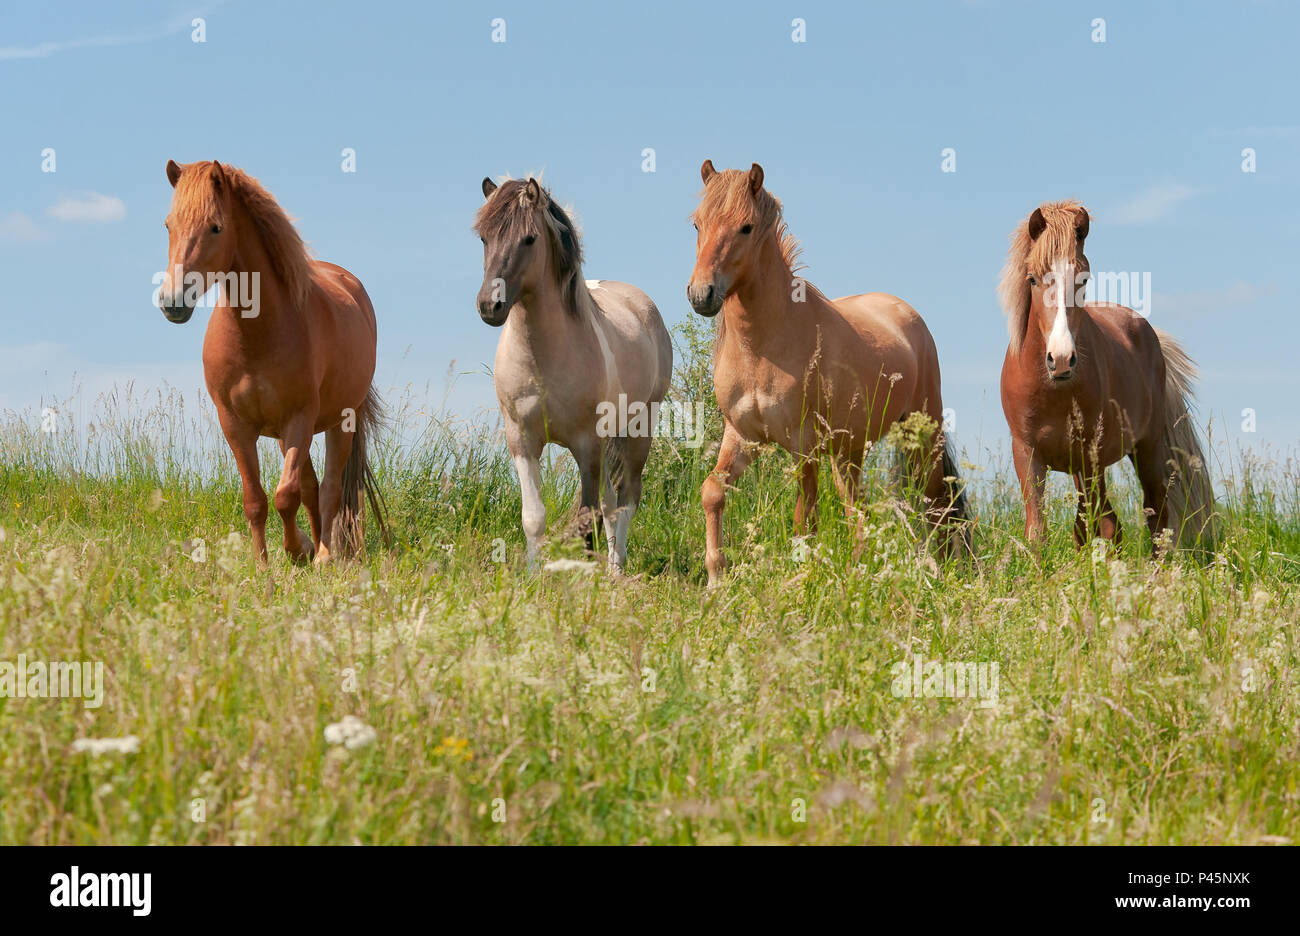 Four Icelandic horses standing in a green grass meadow, young stallions with different coat colors, chestnut, mouse dun tobiano and red dun, Germany Stock Photo